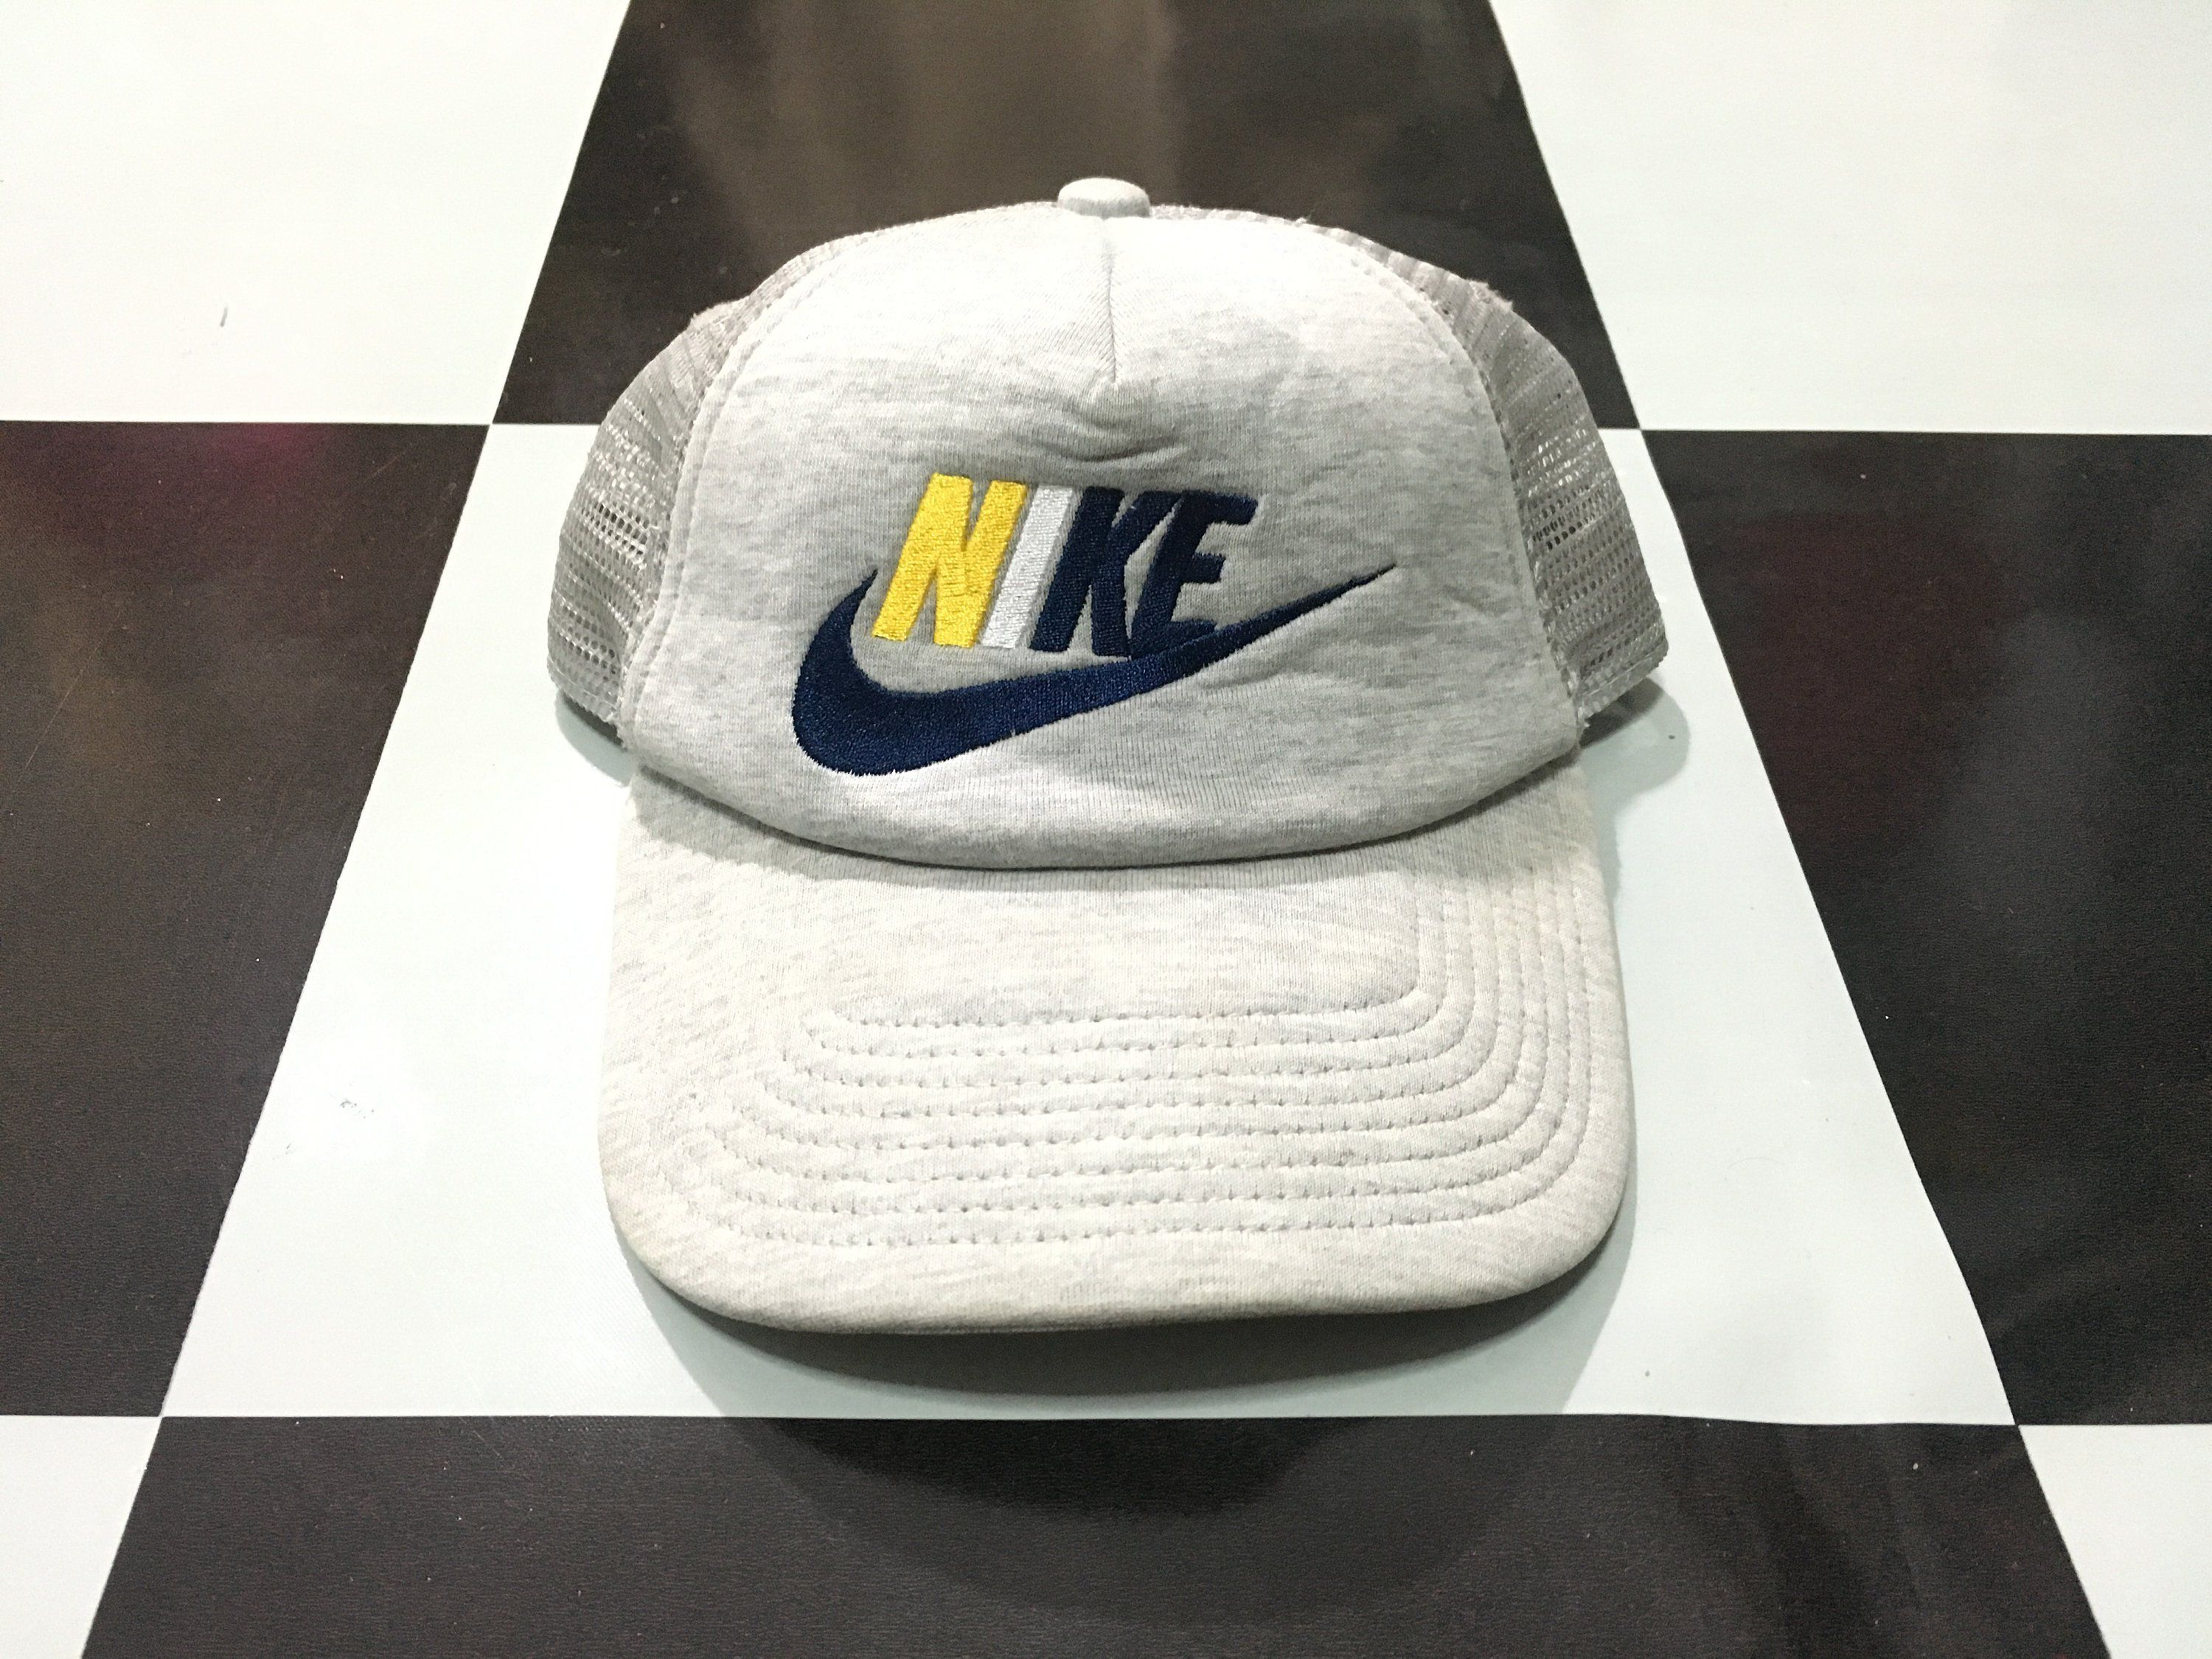 4bc684d681a Vintage Nike cap spell out multi color swoosh logo embroidered trucker cap  Gray 90s Nike gray tag Excellent condition by AlivevintageShop on Etsy